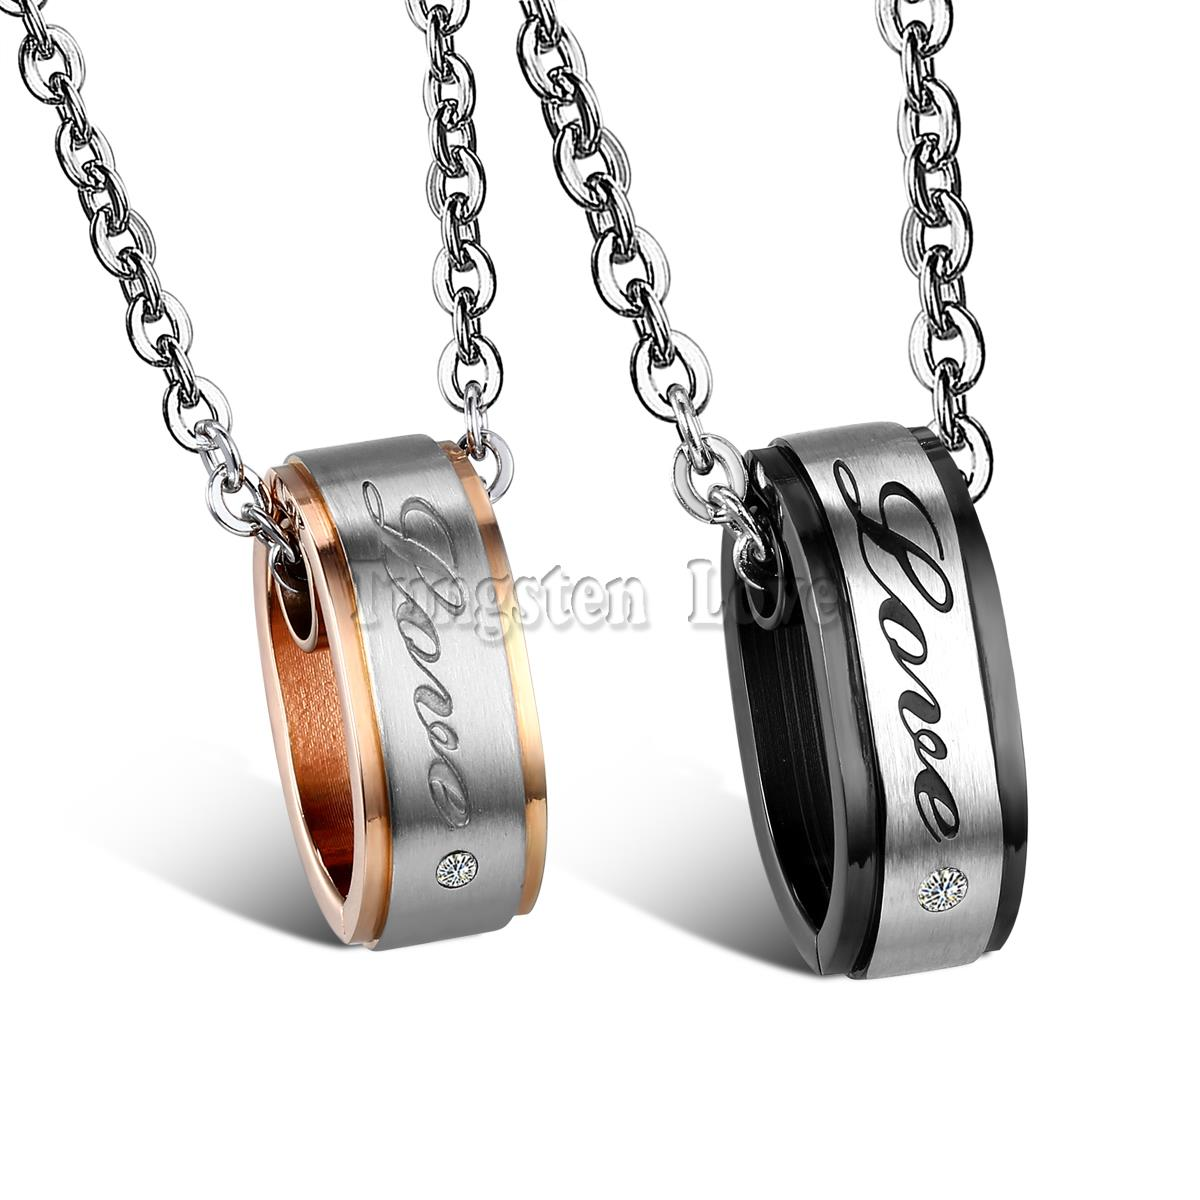 """2015 Lovers Stainless Steel His Black & Hers Rose Gold Color Plated Circle Cz """"Love"""" Engraved Pendant Necklaces for Couple(China (Mainland))"""